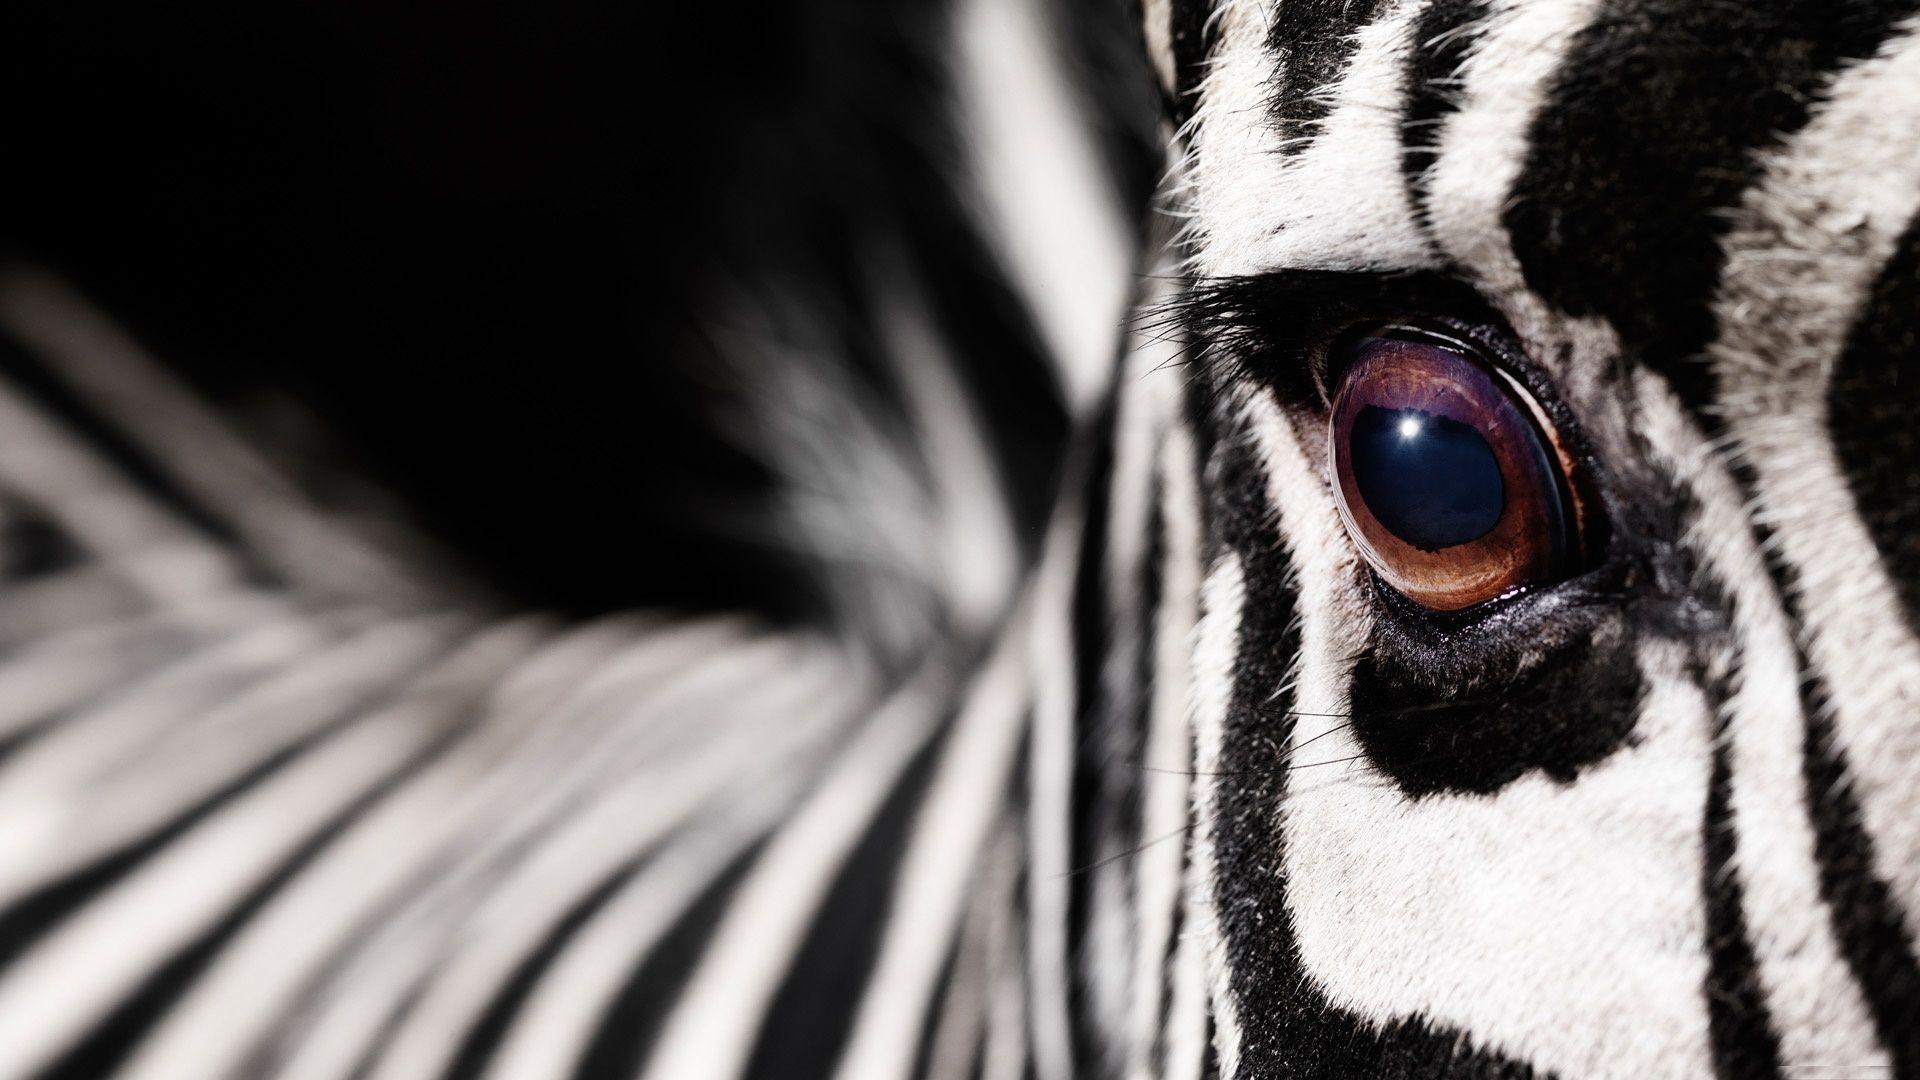 Download Zebra Wallpapers App Gallery 1920×1200 Zebra Image